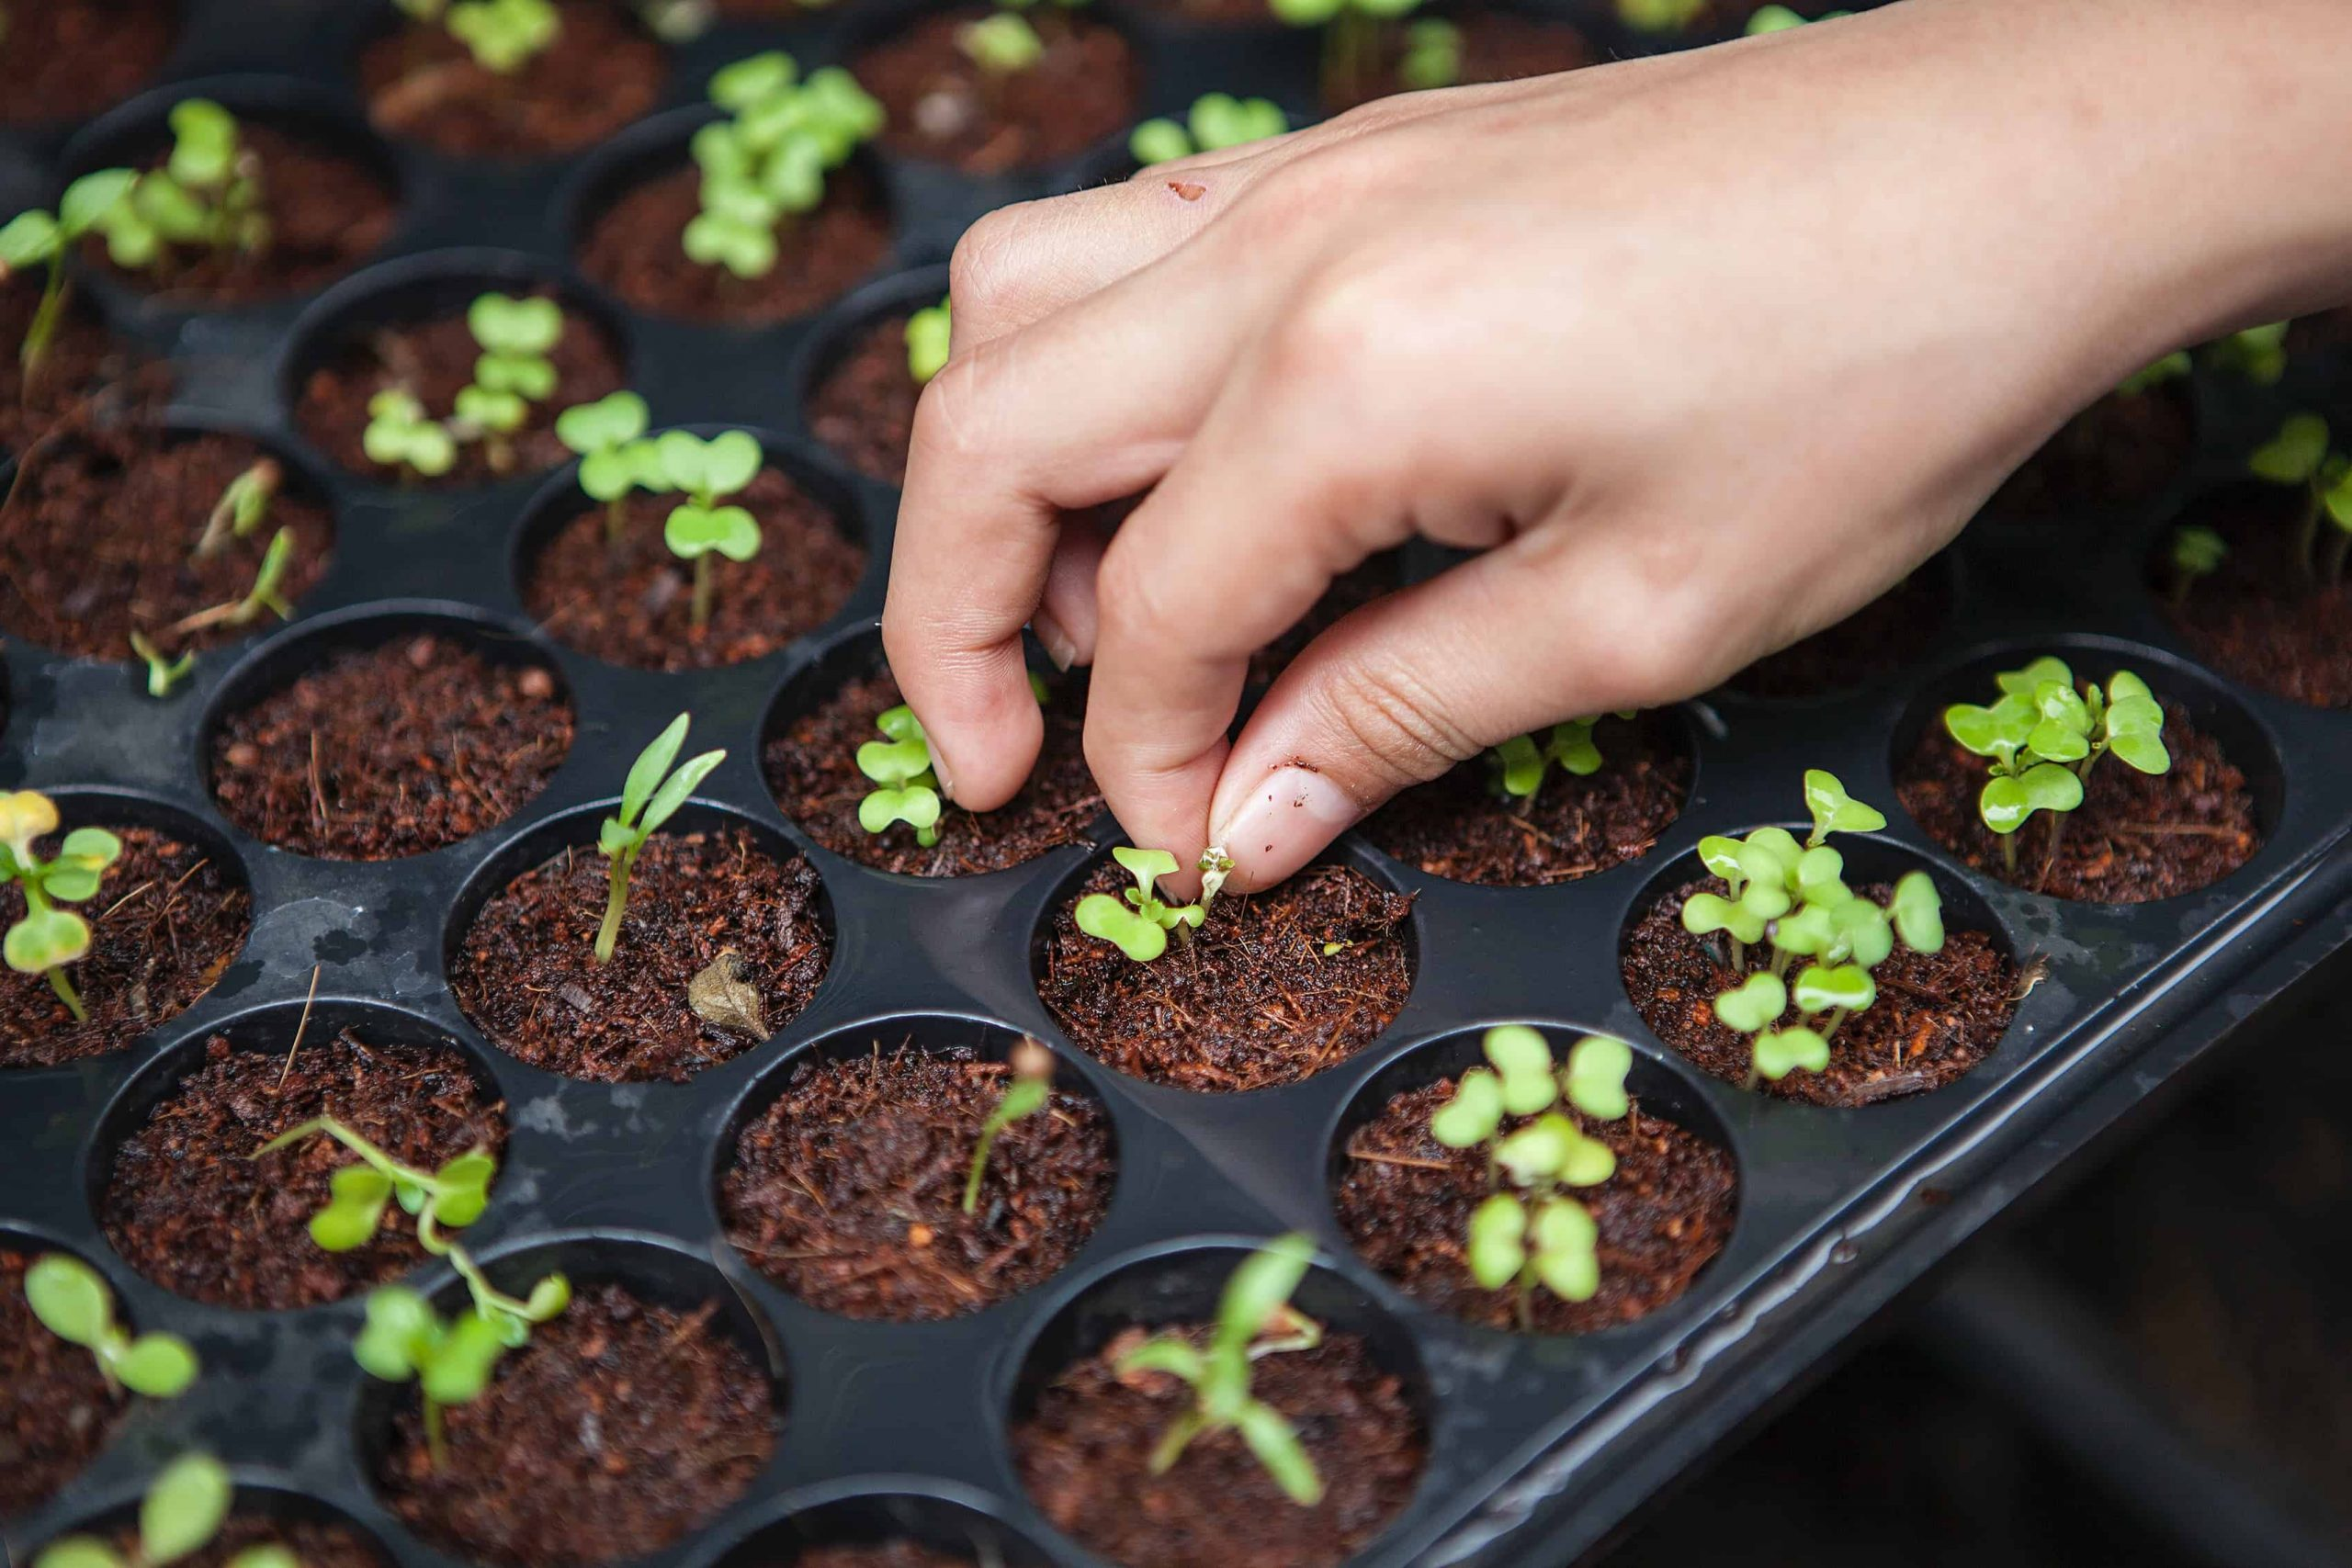 a hand touching a seedling in a seed starting tray